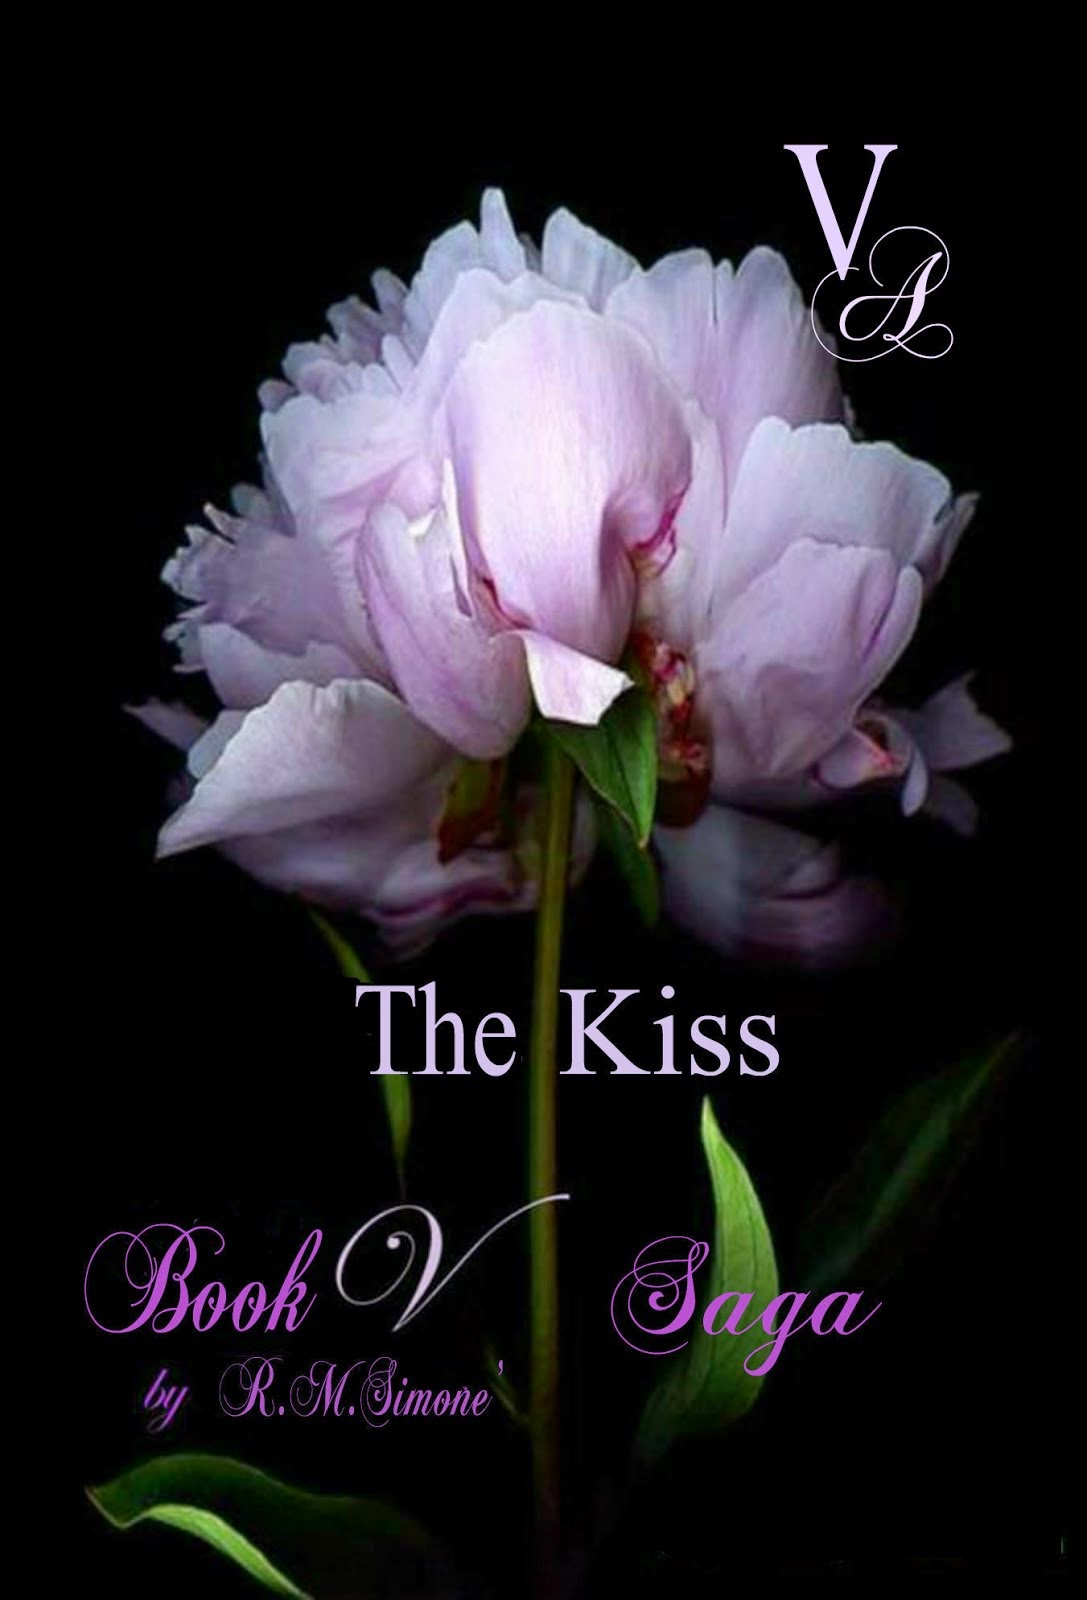 BOOK V Saga, THE KISS Book I